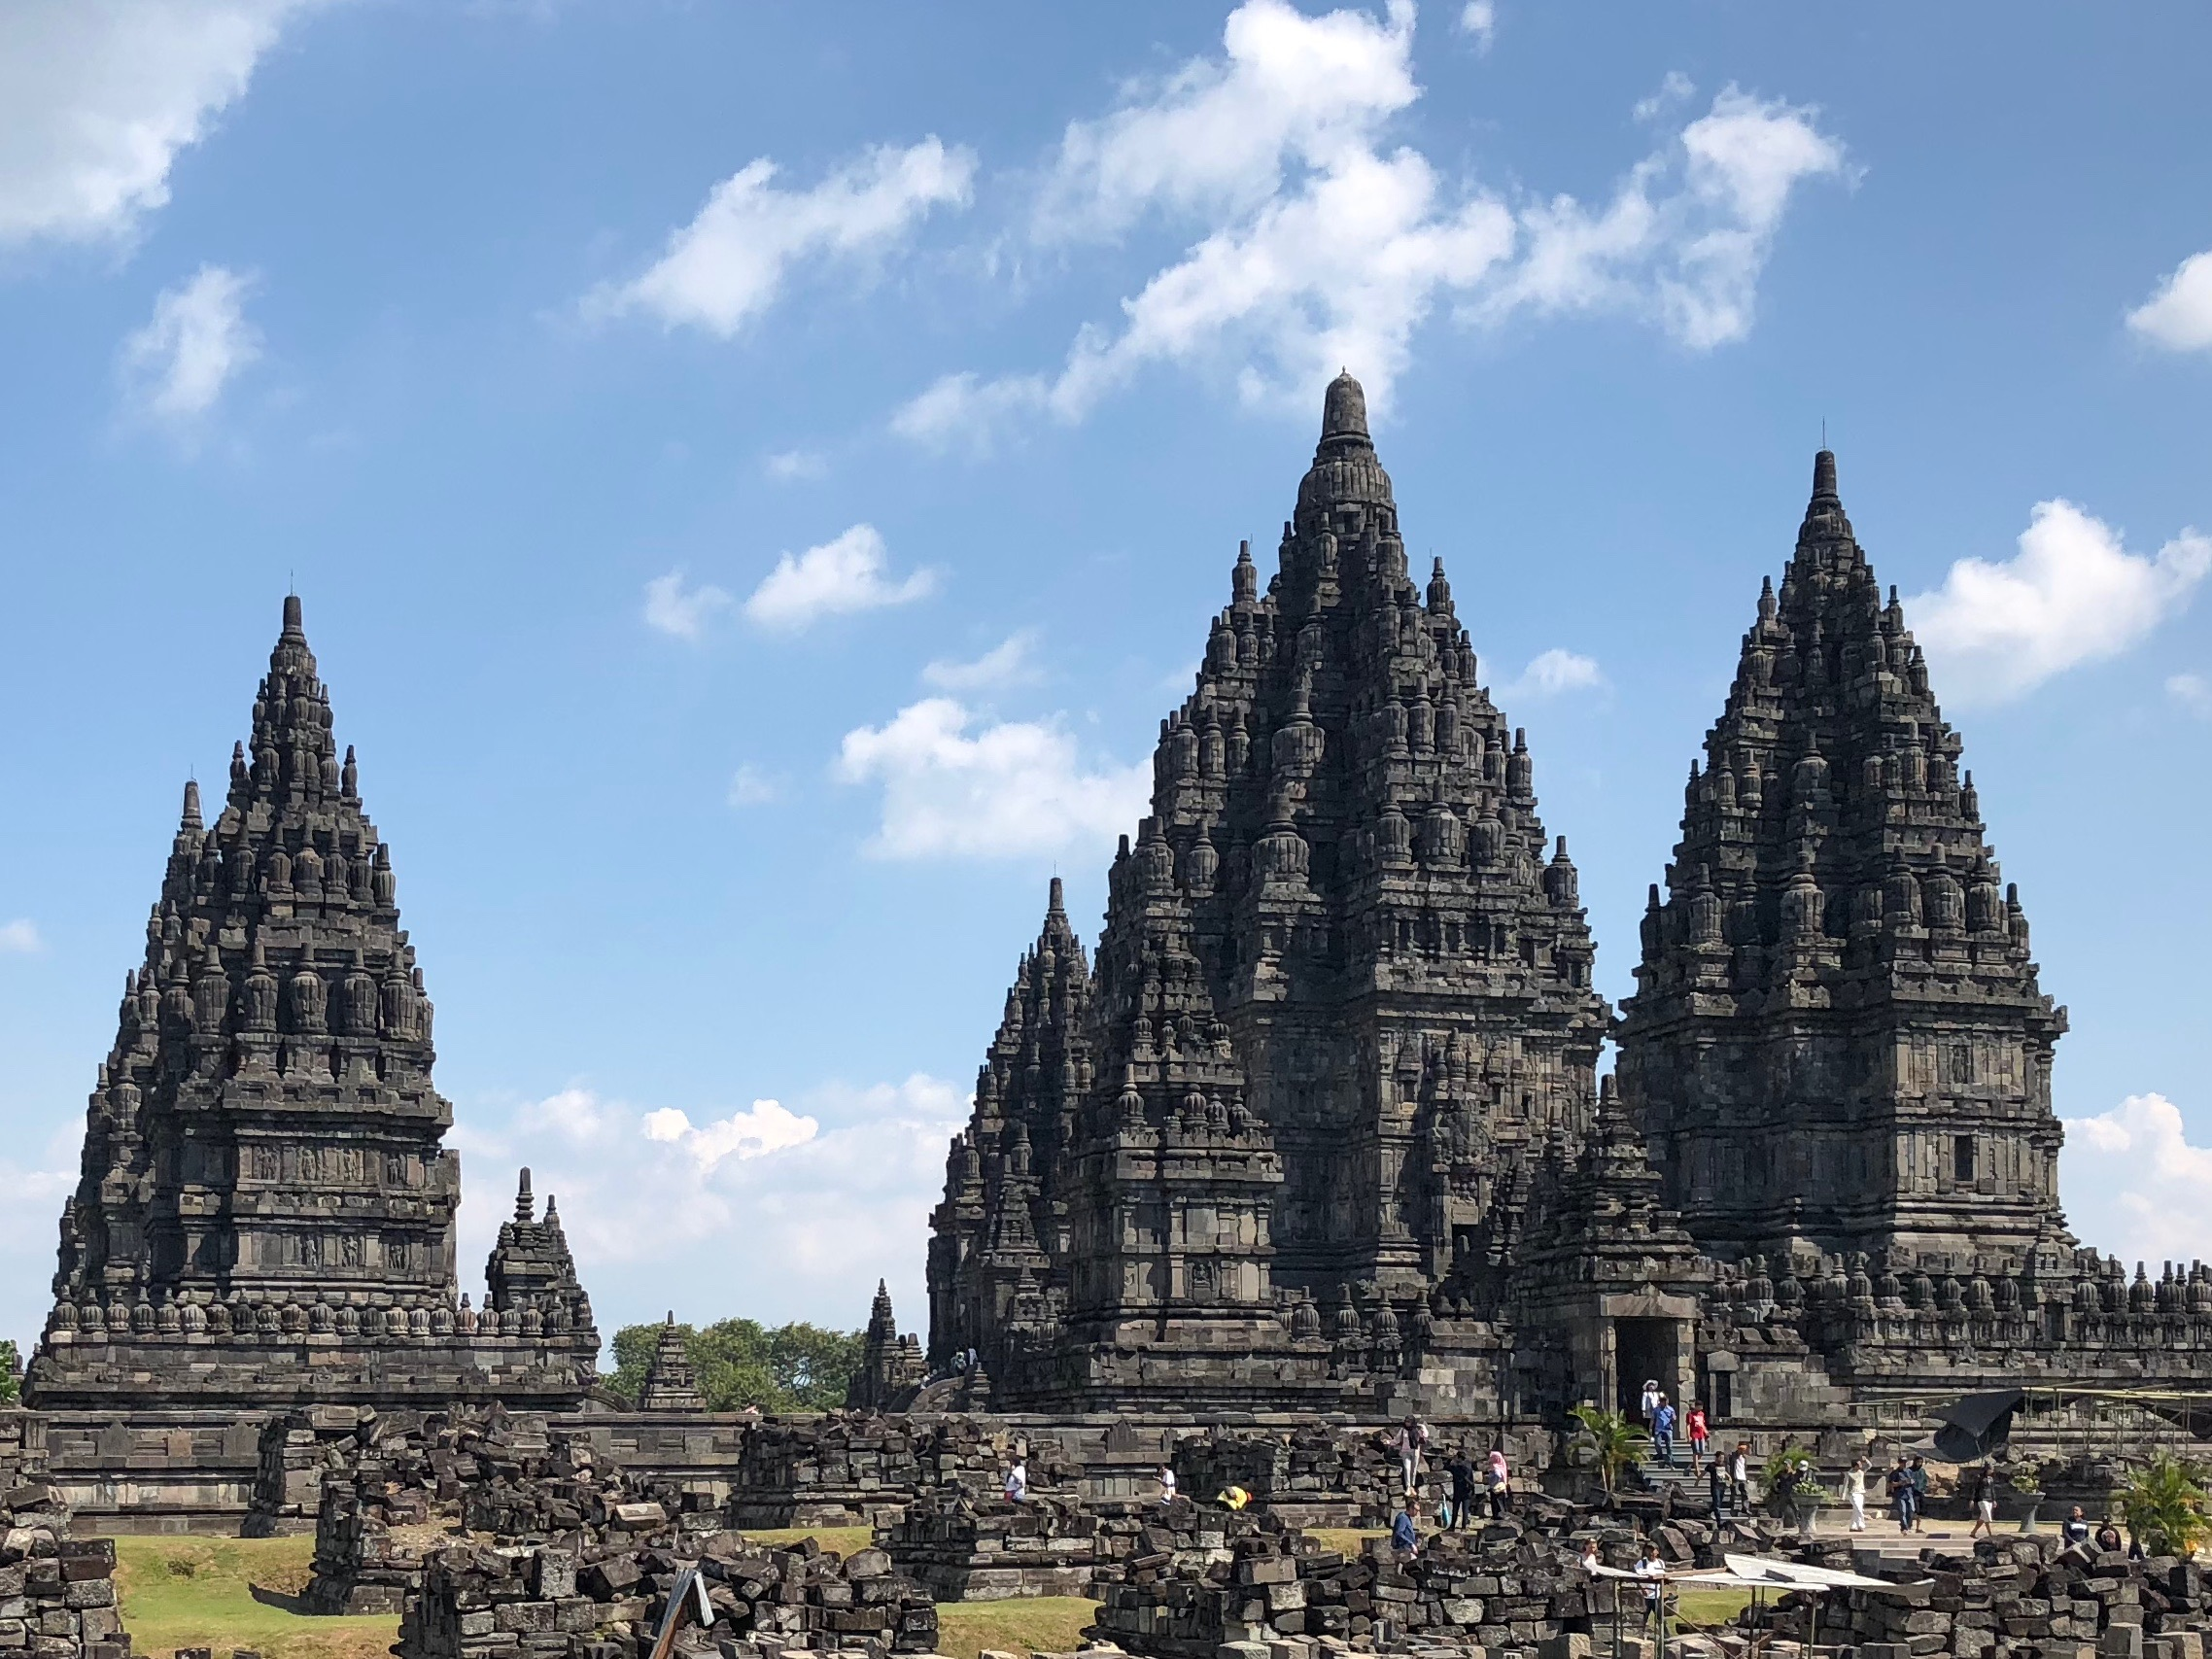 Borobudur gets all the fame, but Prambanan is a must-visit complex on Java as well